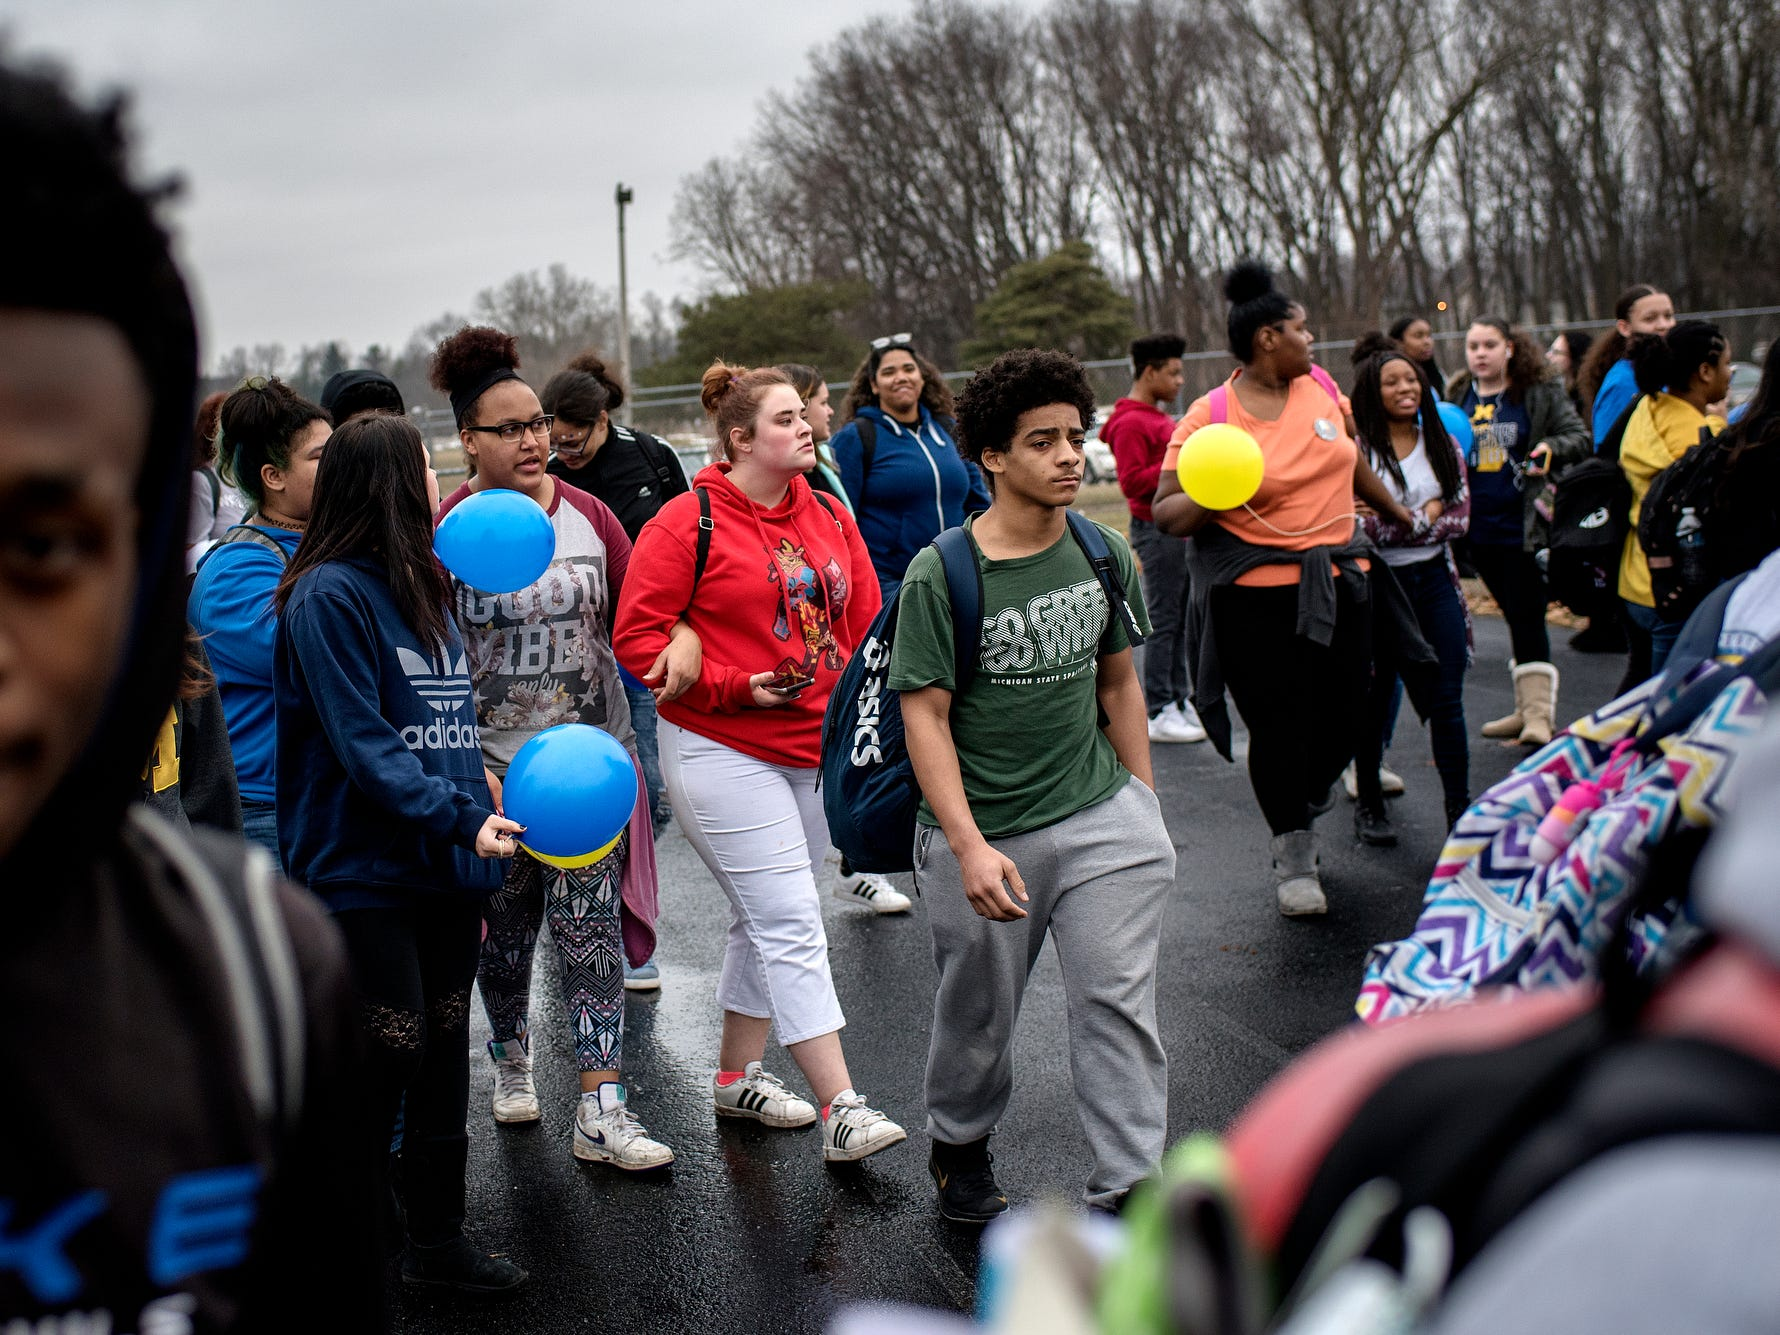 Students walk from the front of the school to the football field to release balloons in honor of classmate 8th-grader Michael Martin at Everett New Tech High School on Monday, Feb. 4, 2019, in Lansing. Michael, 13, died Jan. 25, at Sparrow Hospital, two days after attempting suicide in his home. Joanna Wohlfert, Michael's mother, said her son had endured months of bullying.